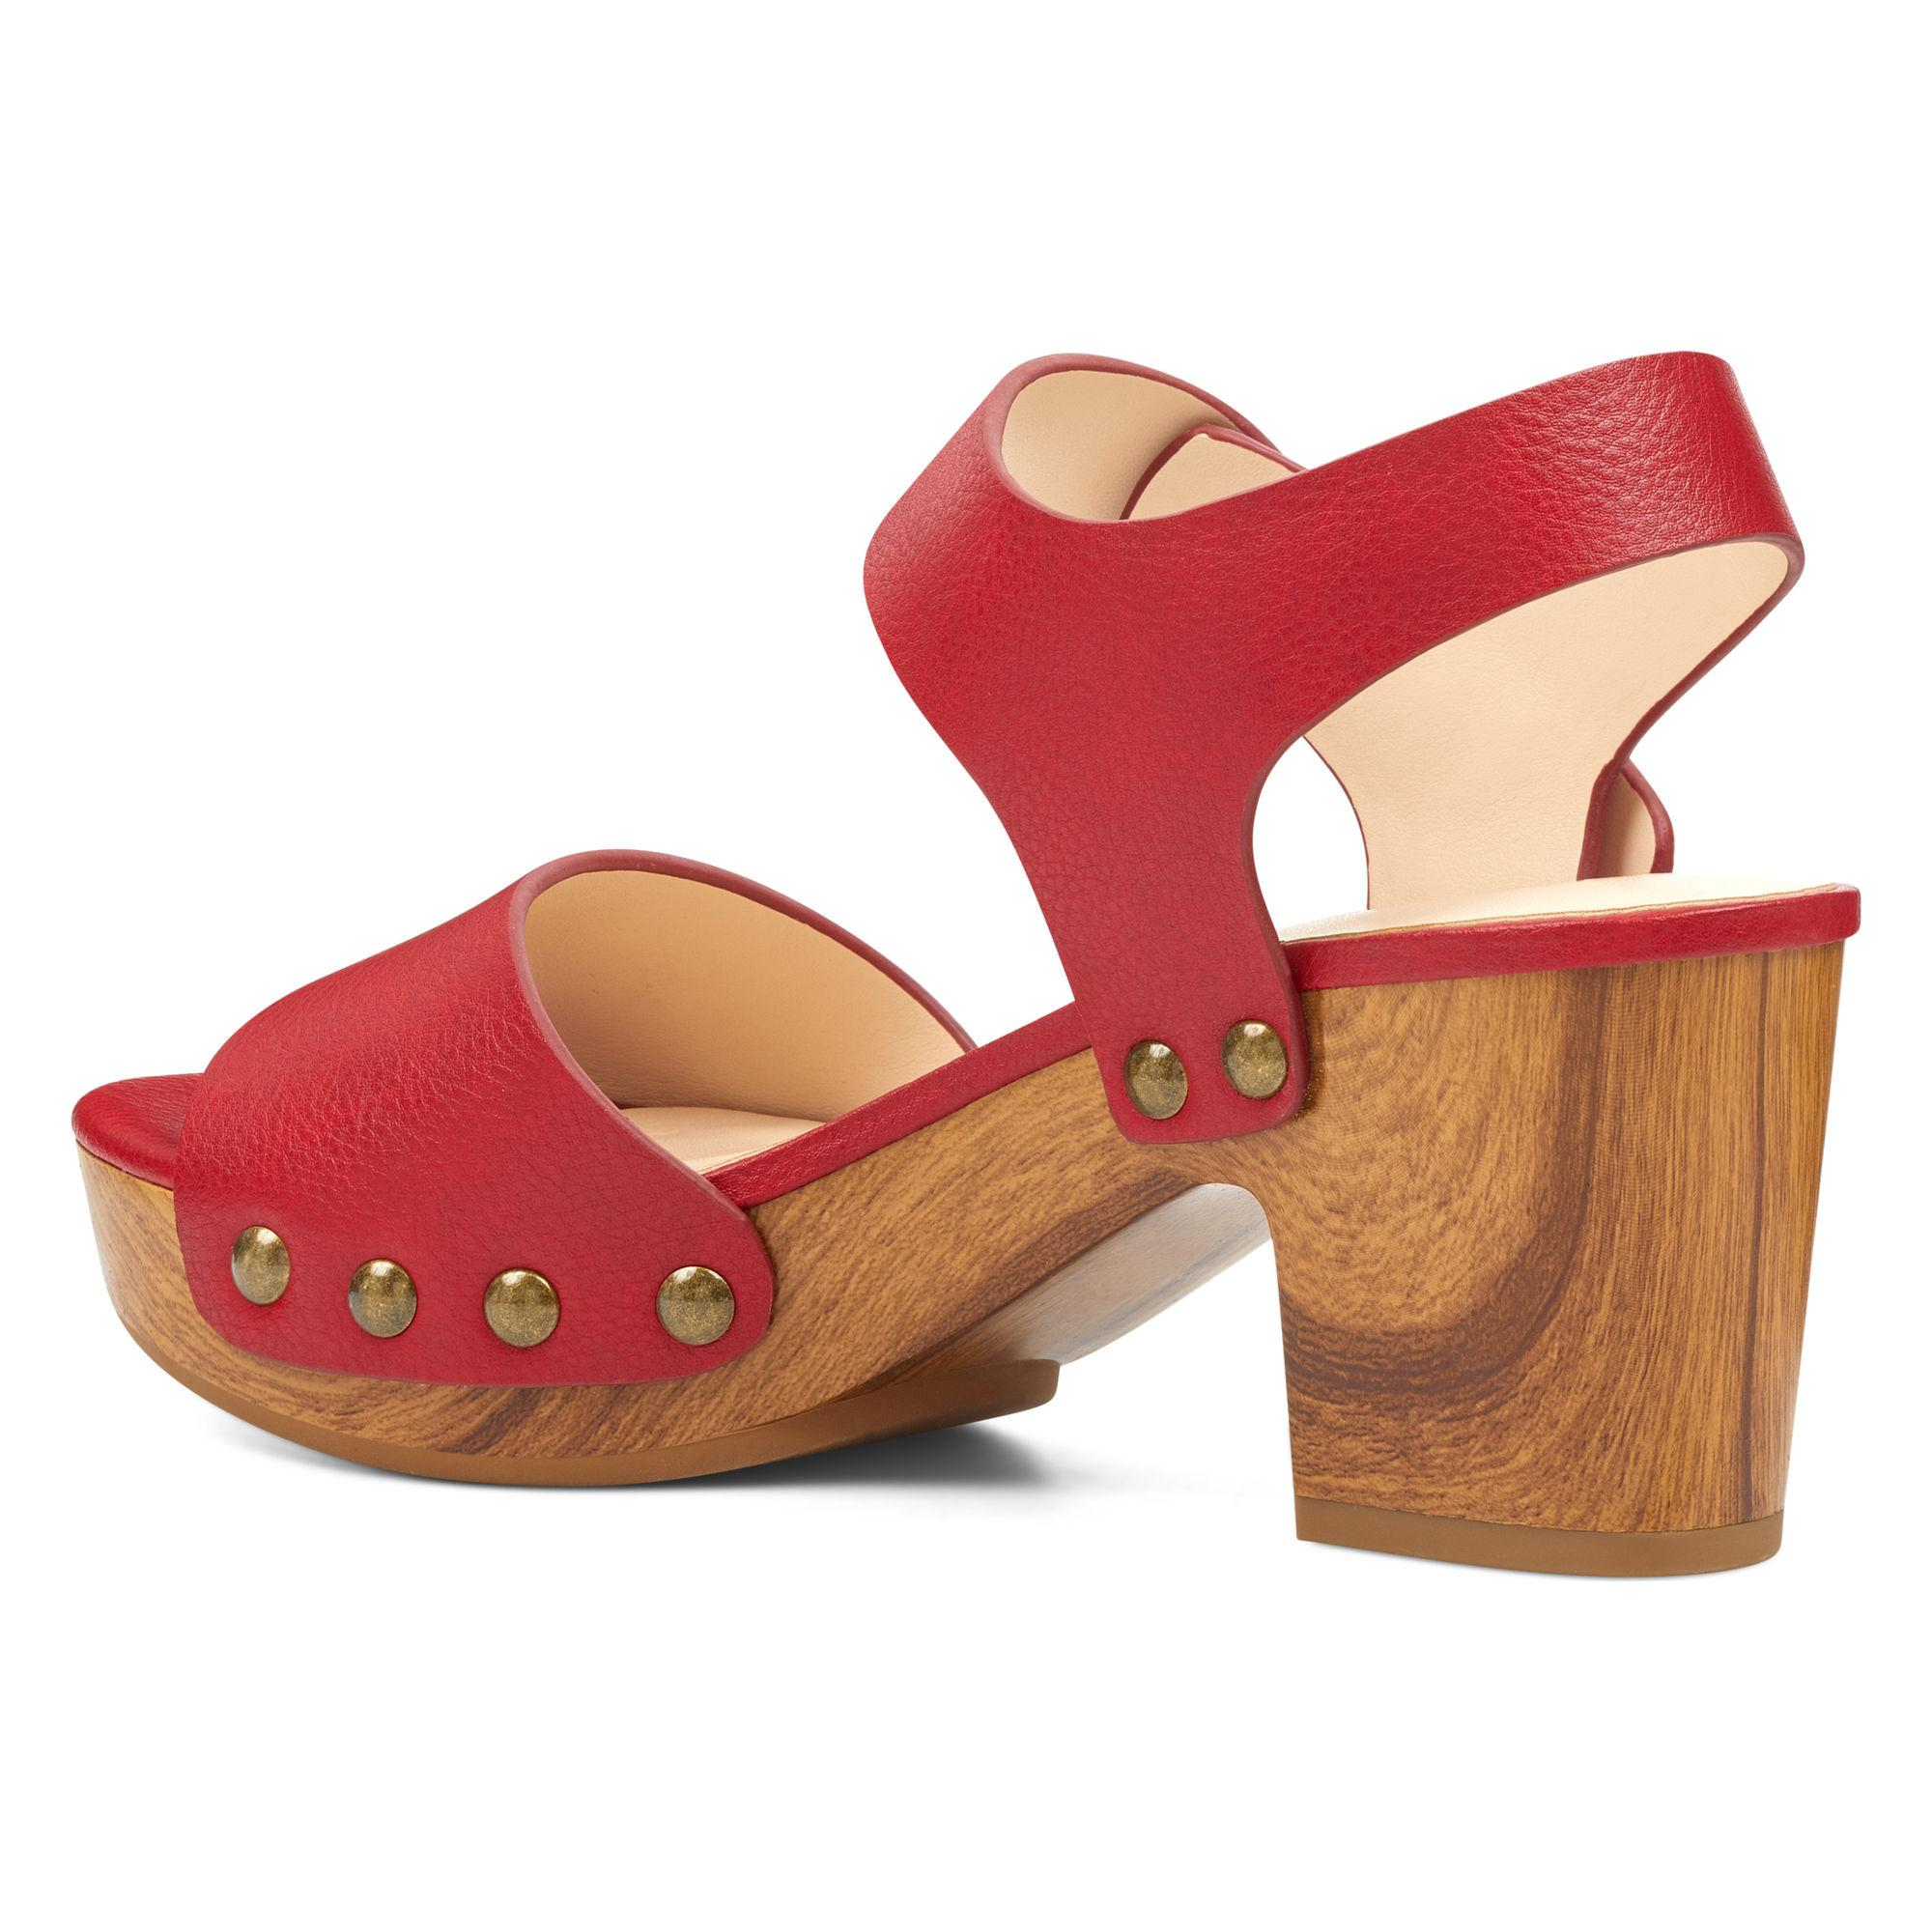 216f4ce0cb6 Lyst - Nine West Cecilia Platform Sandals in Red